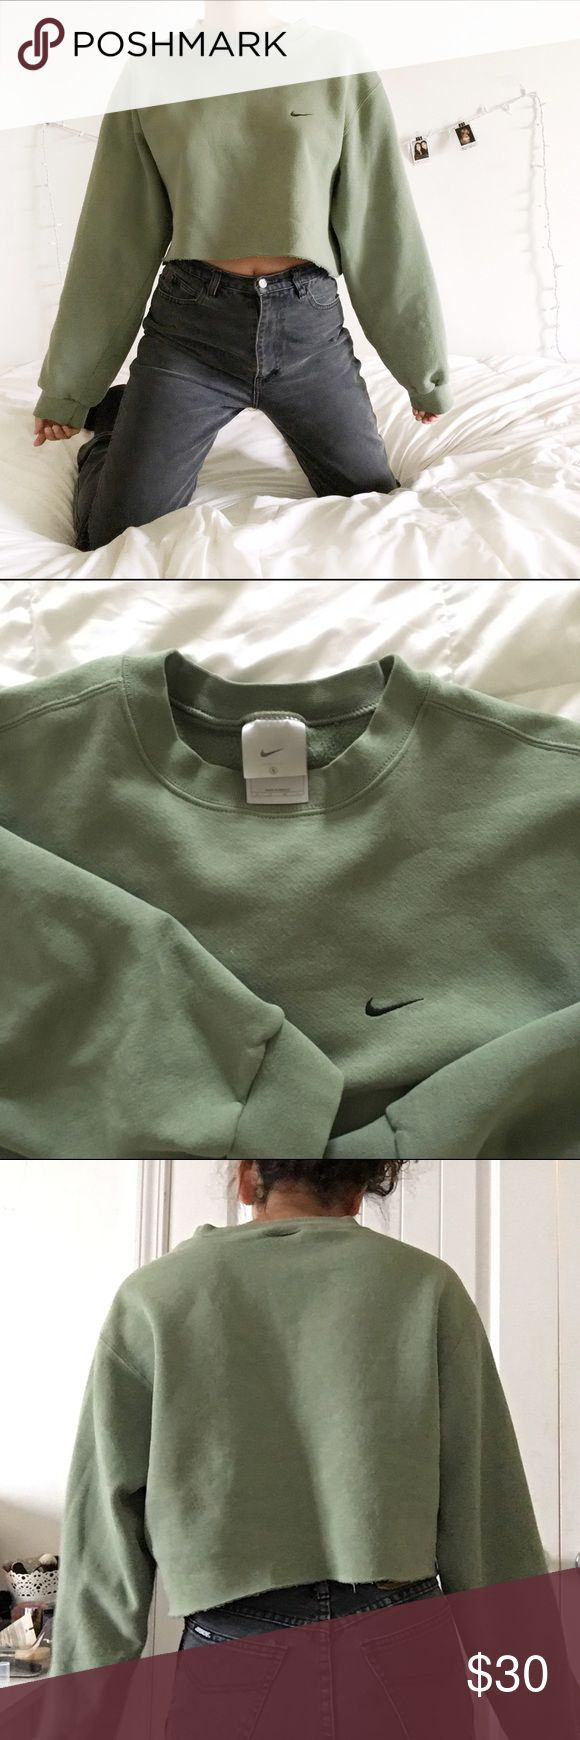 Vintage Nike Sweatshirt Vintage Nike sweater shirt|raw cut|size small but can fit a Medium and maybe a large|in perfect condition! Bought from dep0p| never worn out| Nike Tops Sweatshirts Hoodies